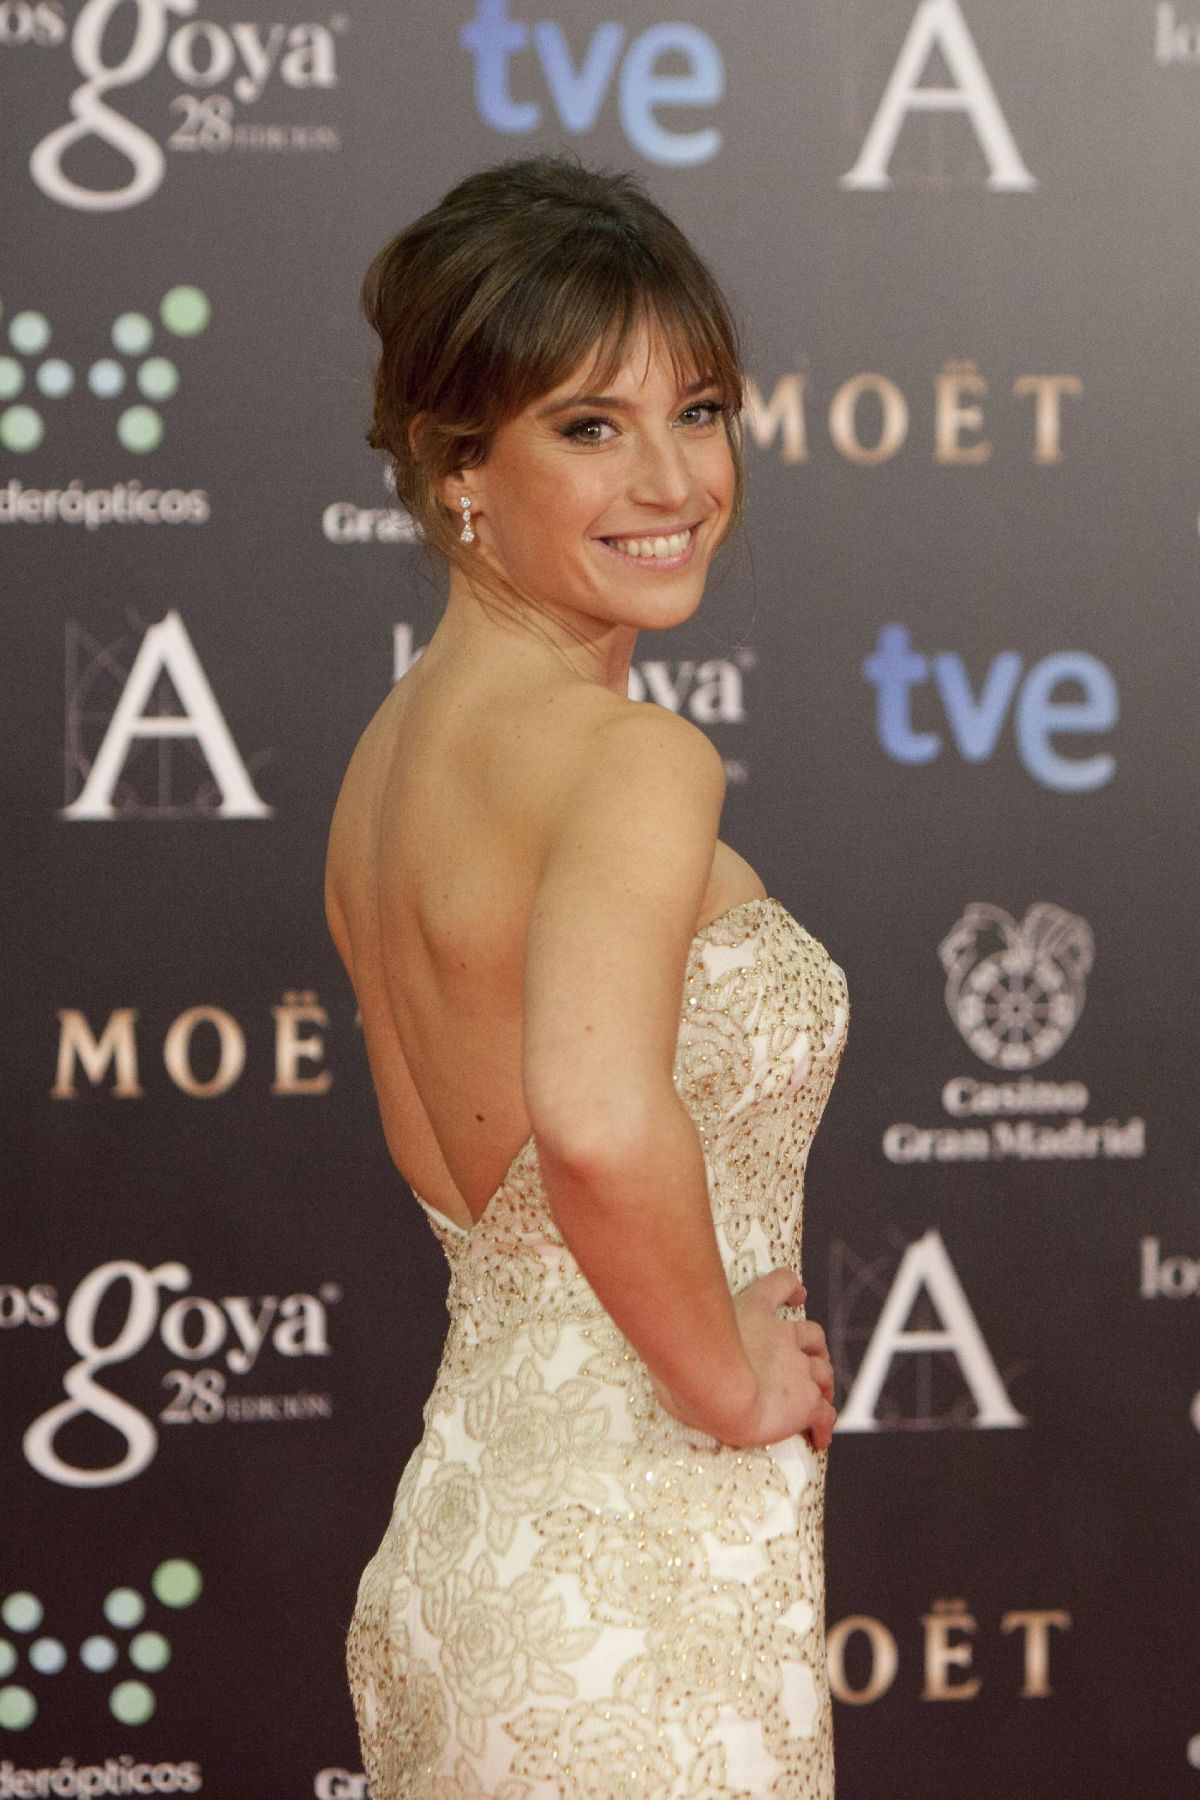 MARTA ETURA at 2014 Goya Film Awards in Madrid